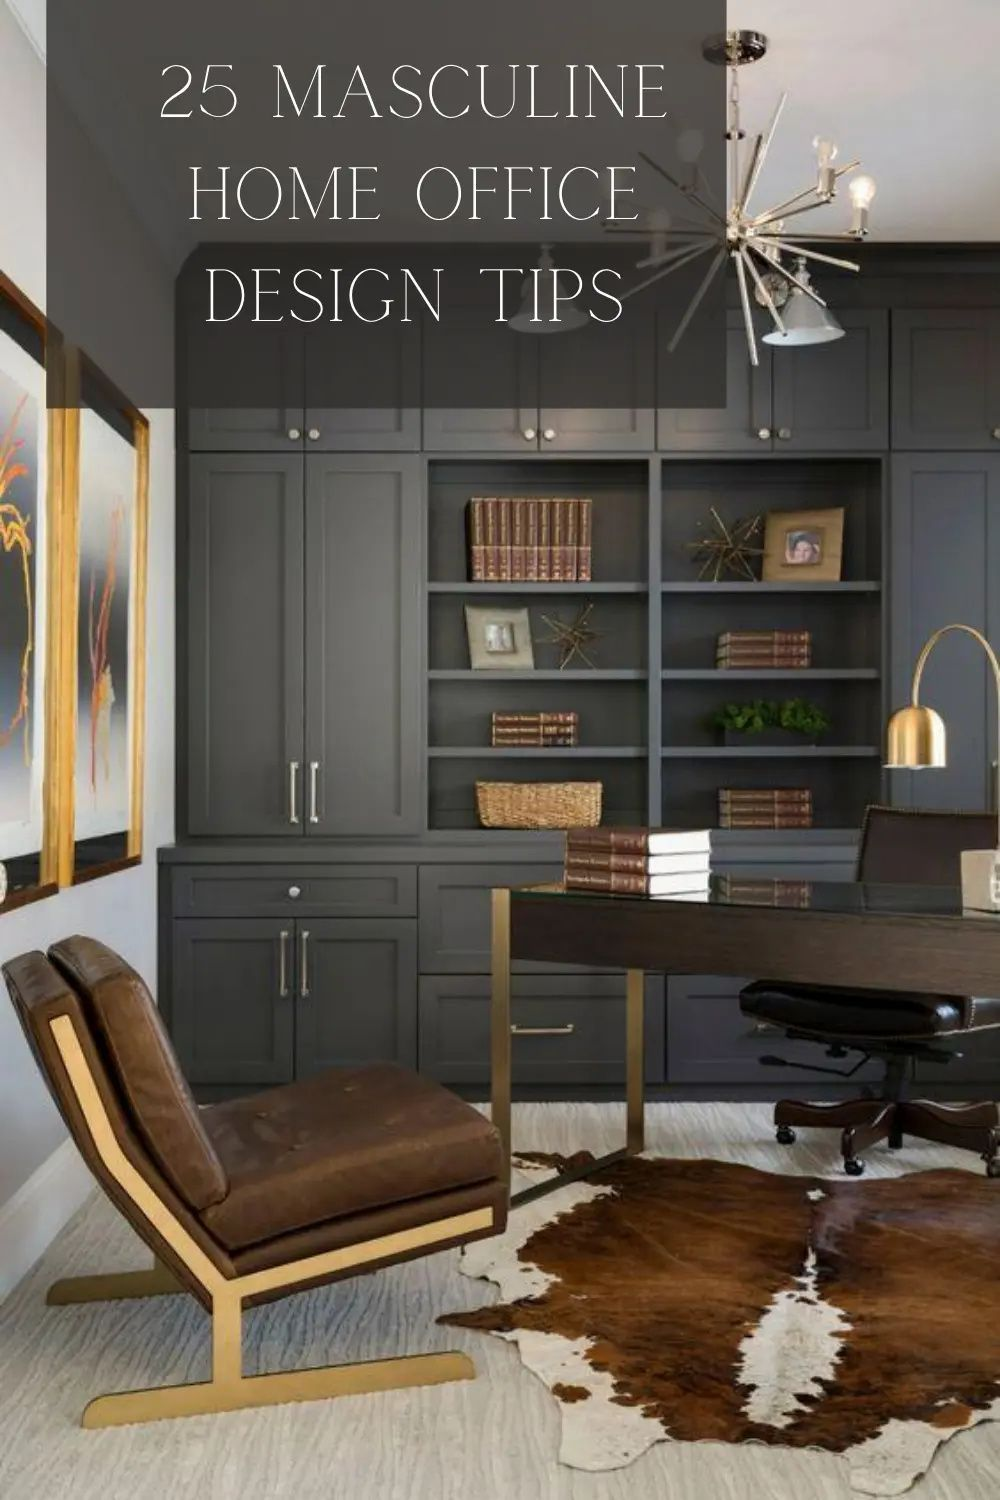 TURN YOUR SPARE BEDROOM INTO THE ULTIMATE MASCULINE HOME OFFICE WITH THESE 25 IDEAS